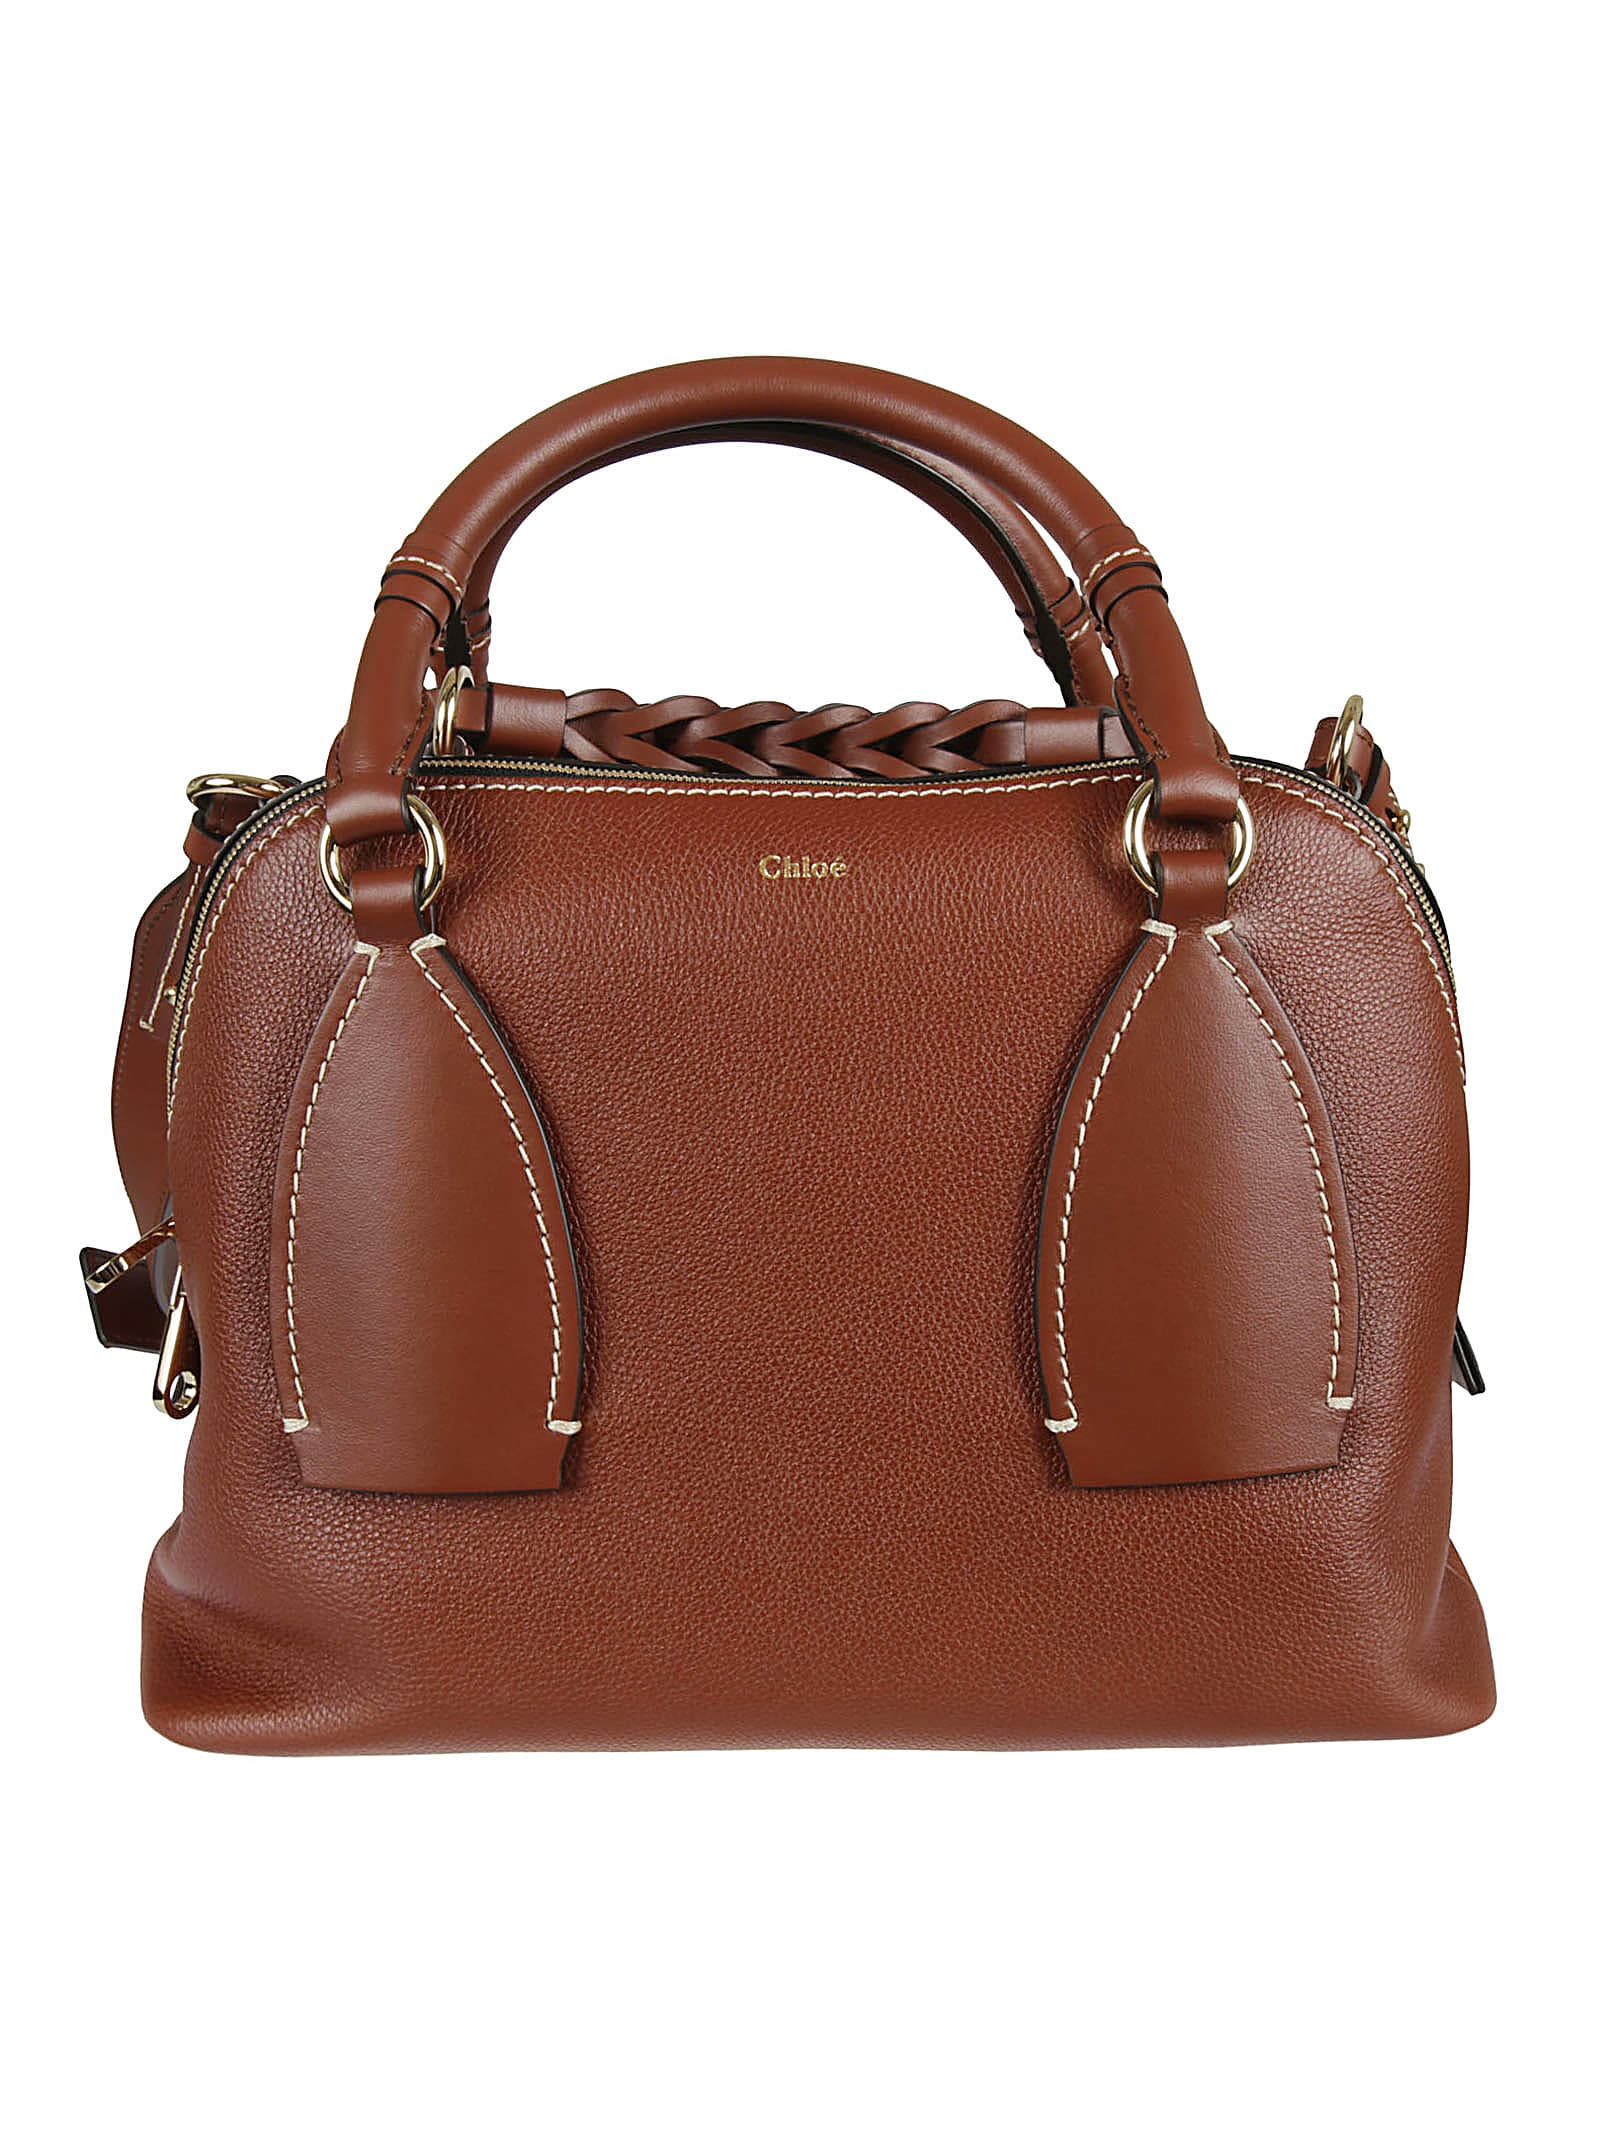 Chloé Medium Day Tote from ChloéComposition: 100% Calf Leather